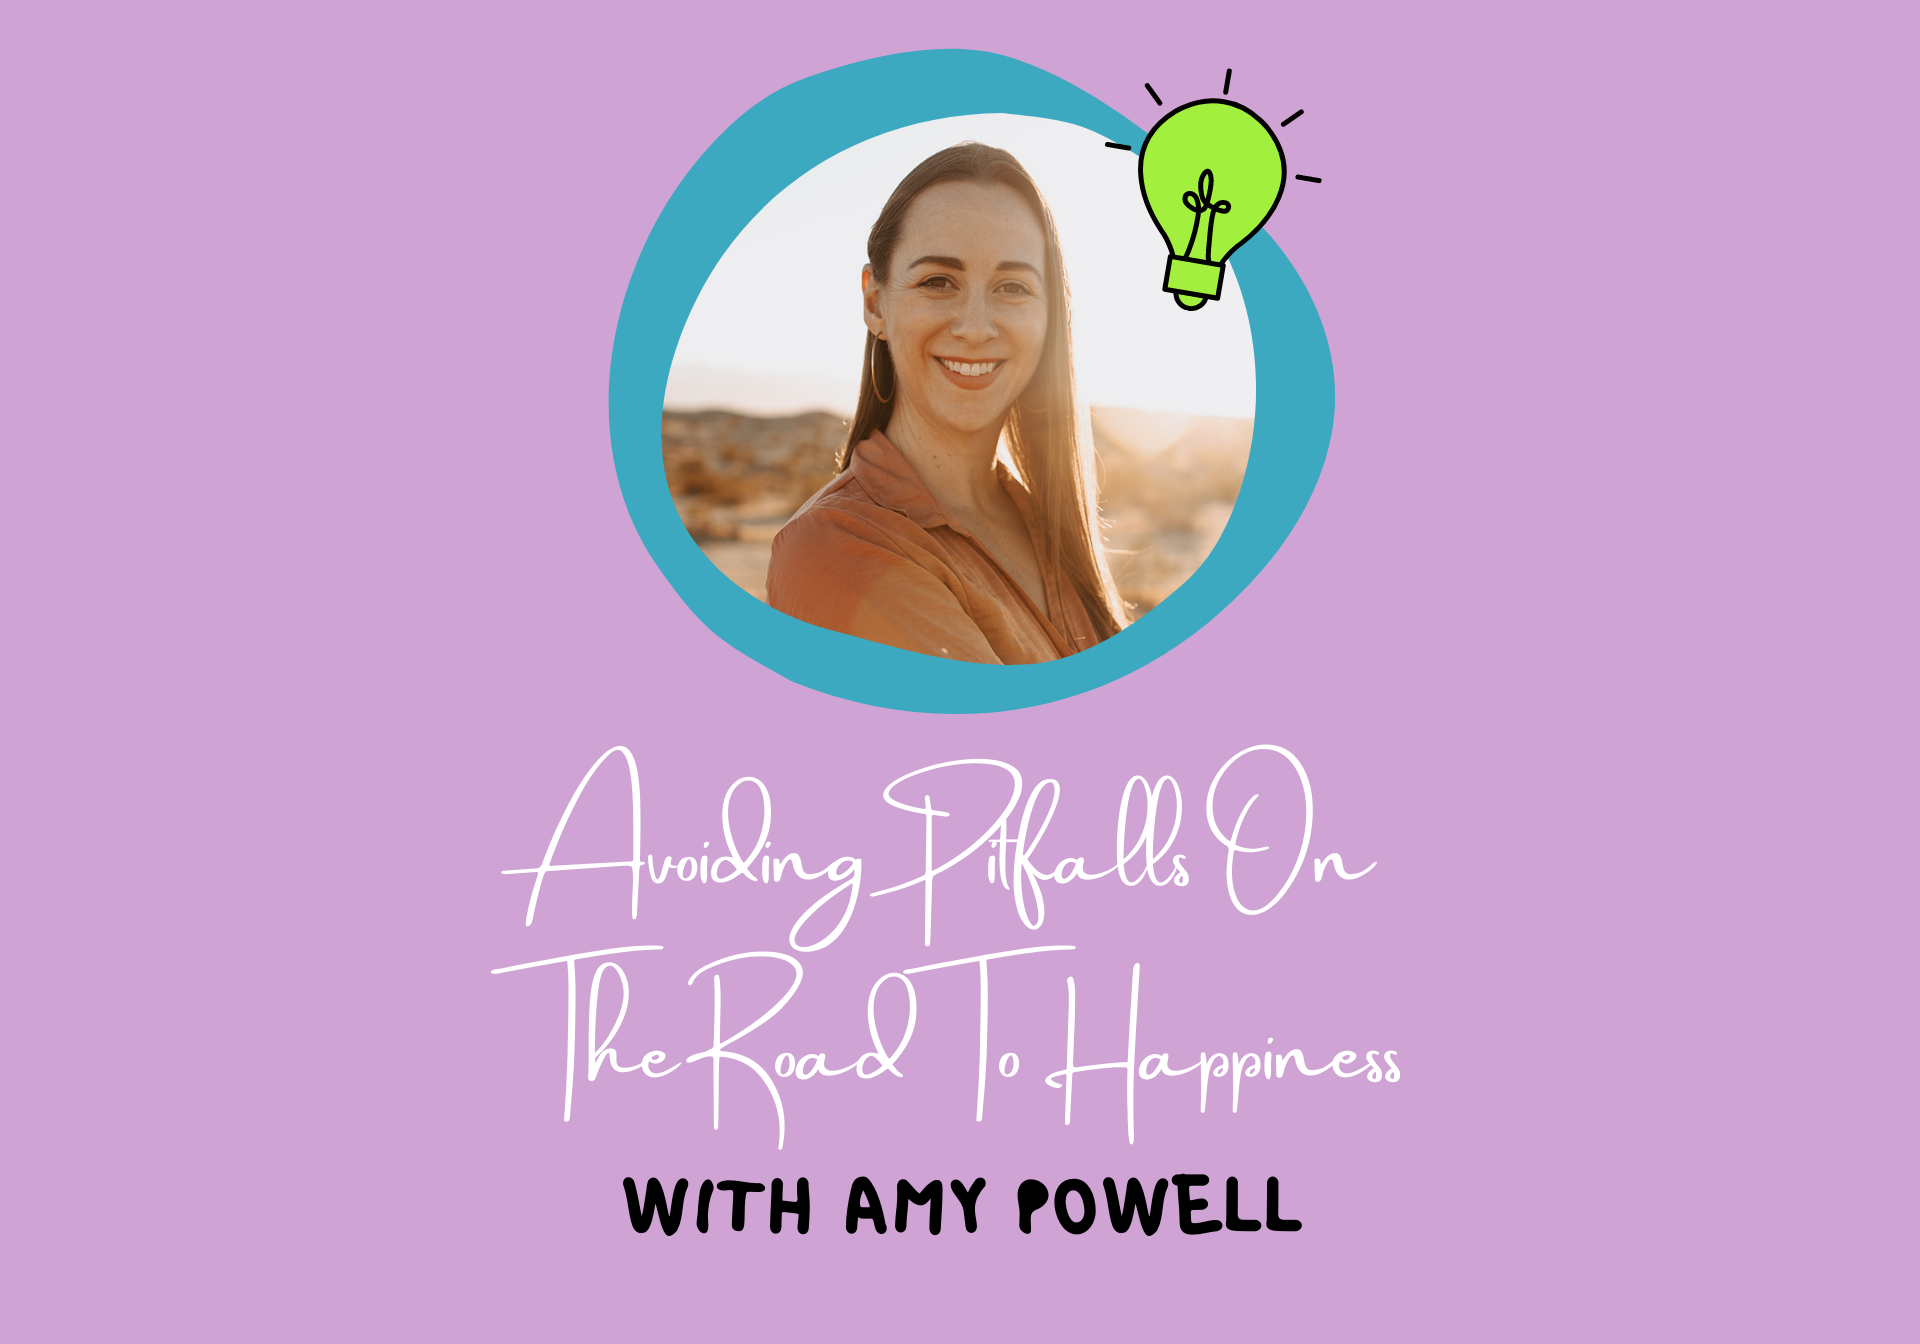 Avoiding Pitfalls On The Road To Happiness With Amy Powell